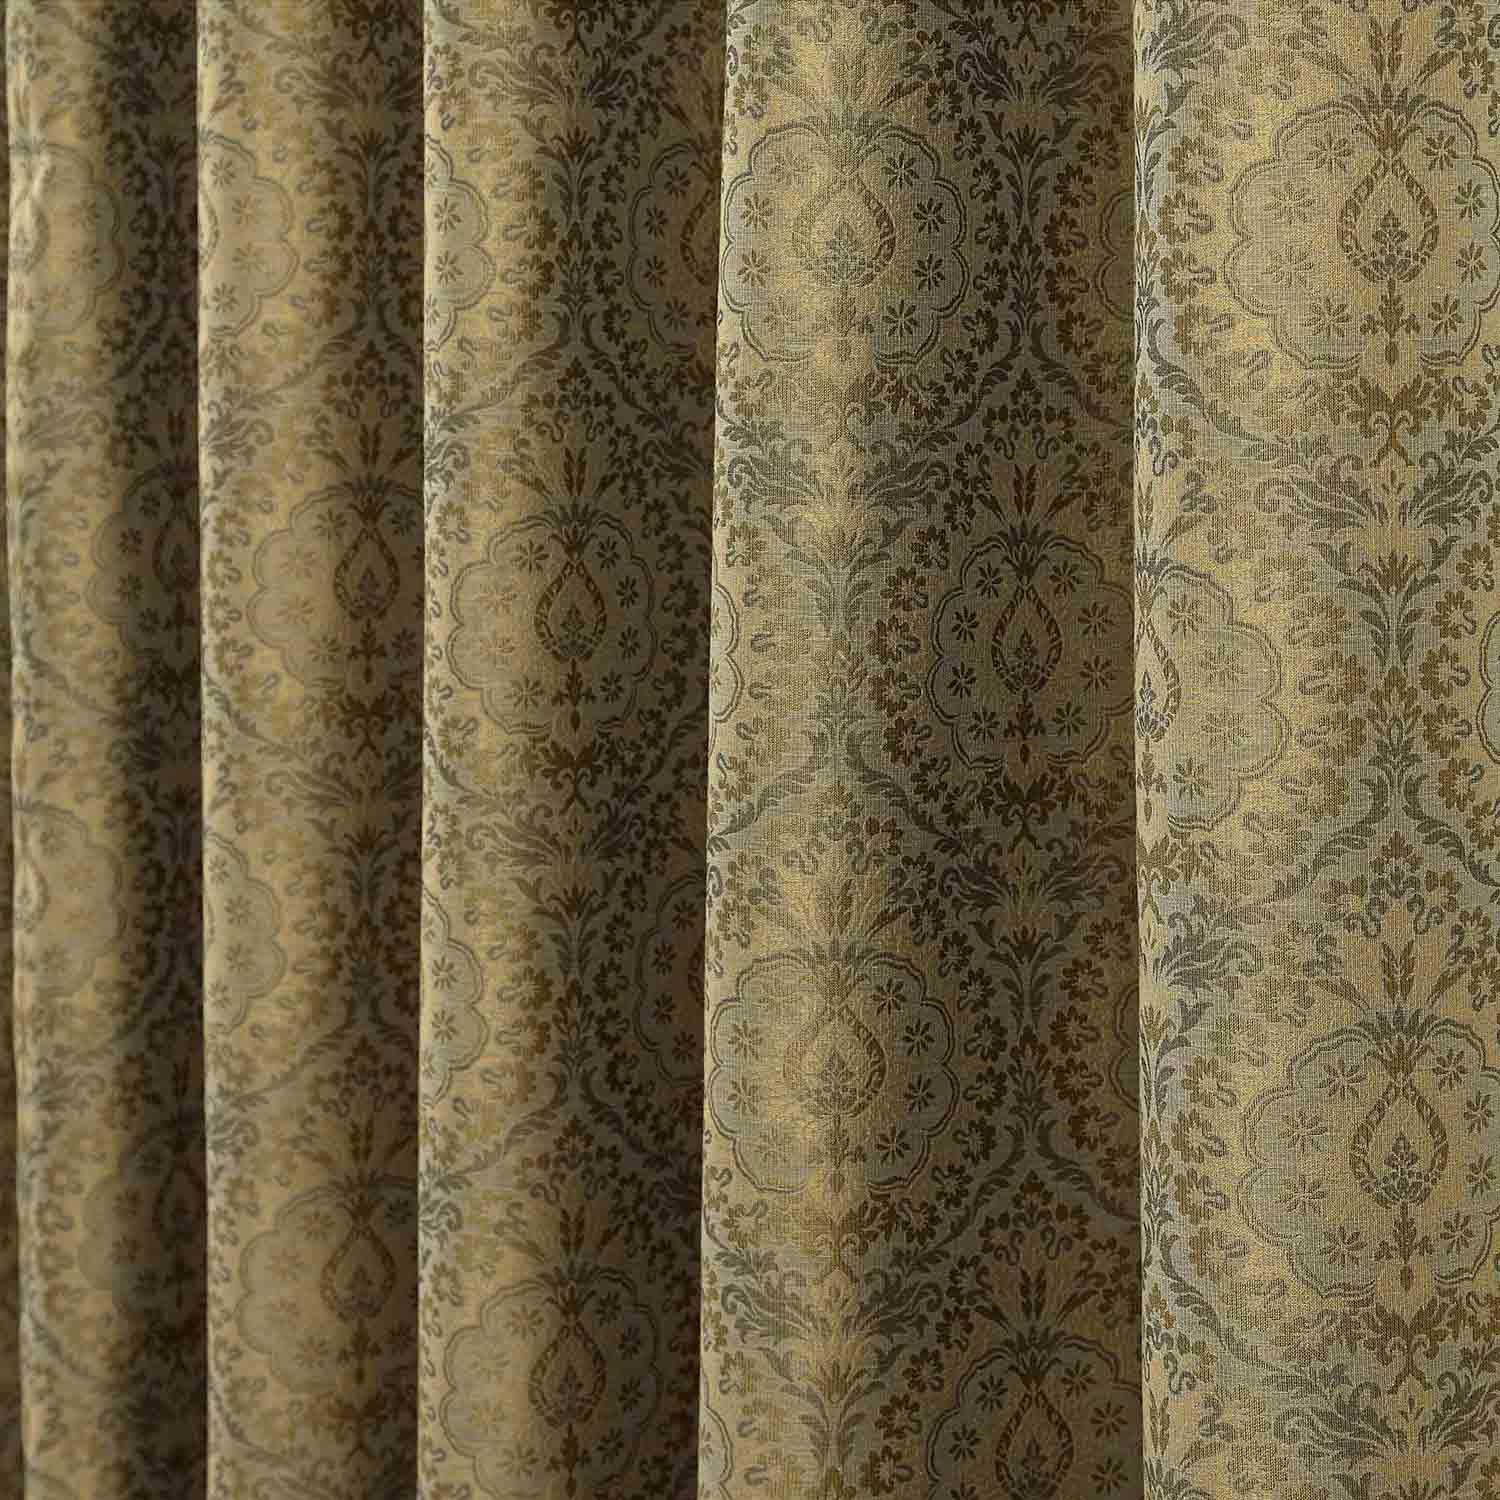 Curtains texture gold - Floral Pencil Pleat Fully Lined Jacquard Damask Curtains